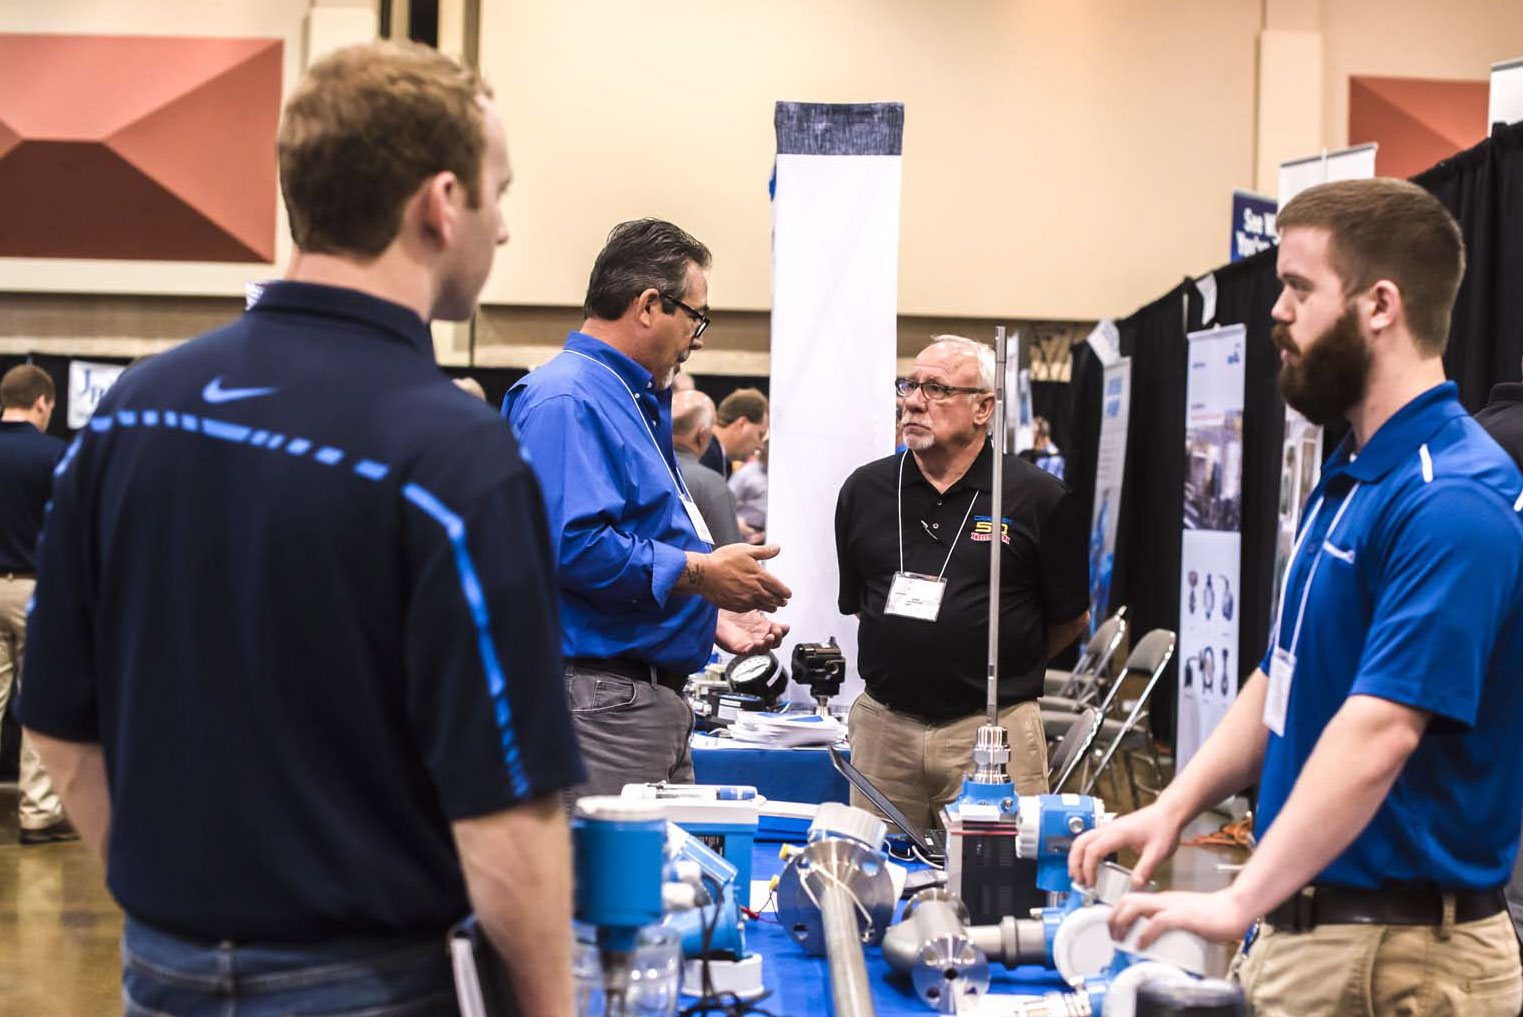 Exhibitors were chosen for eChem Expo because their products and services fill the needs revealed in 70 in-depth interviews with plant engineers.